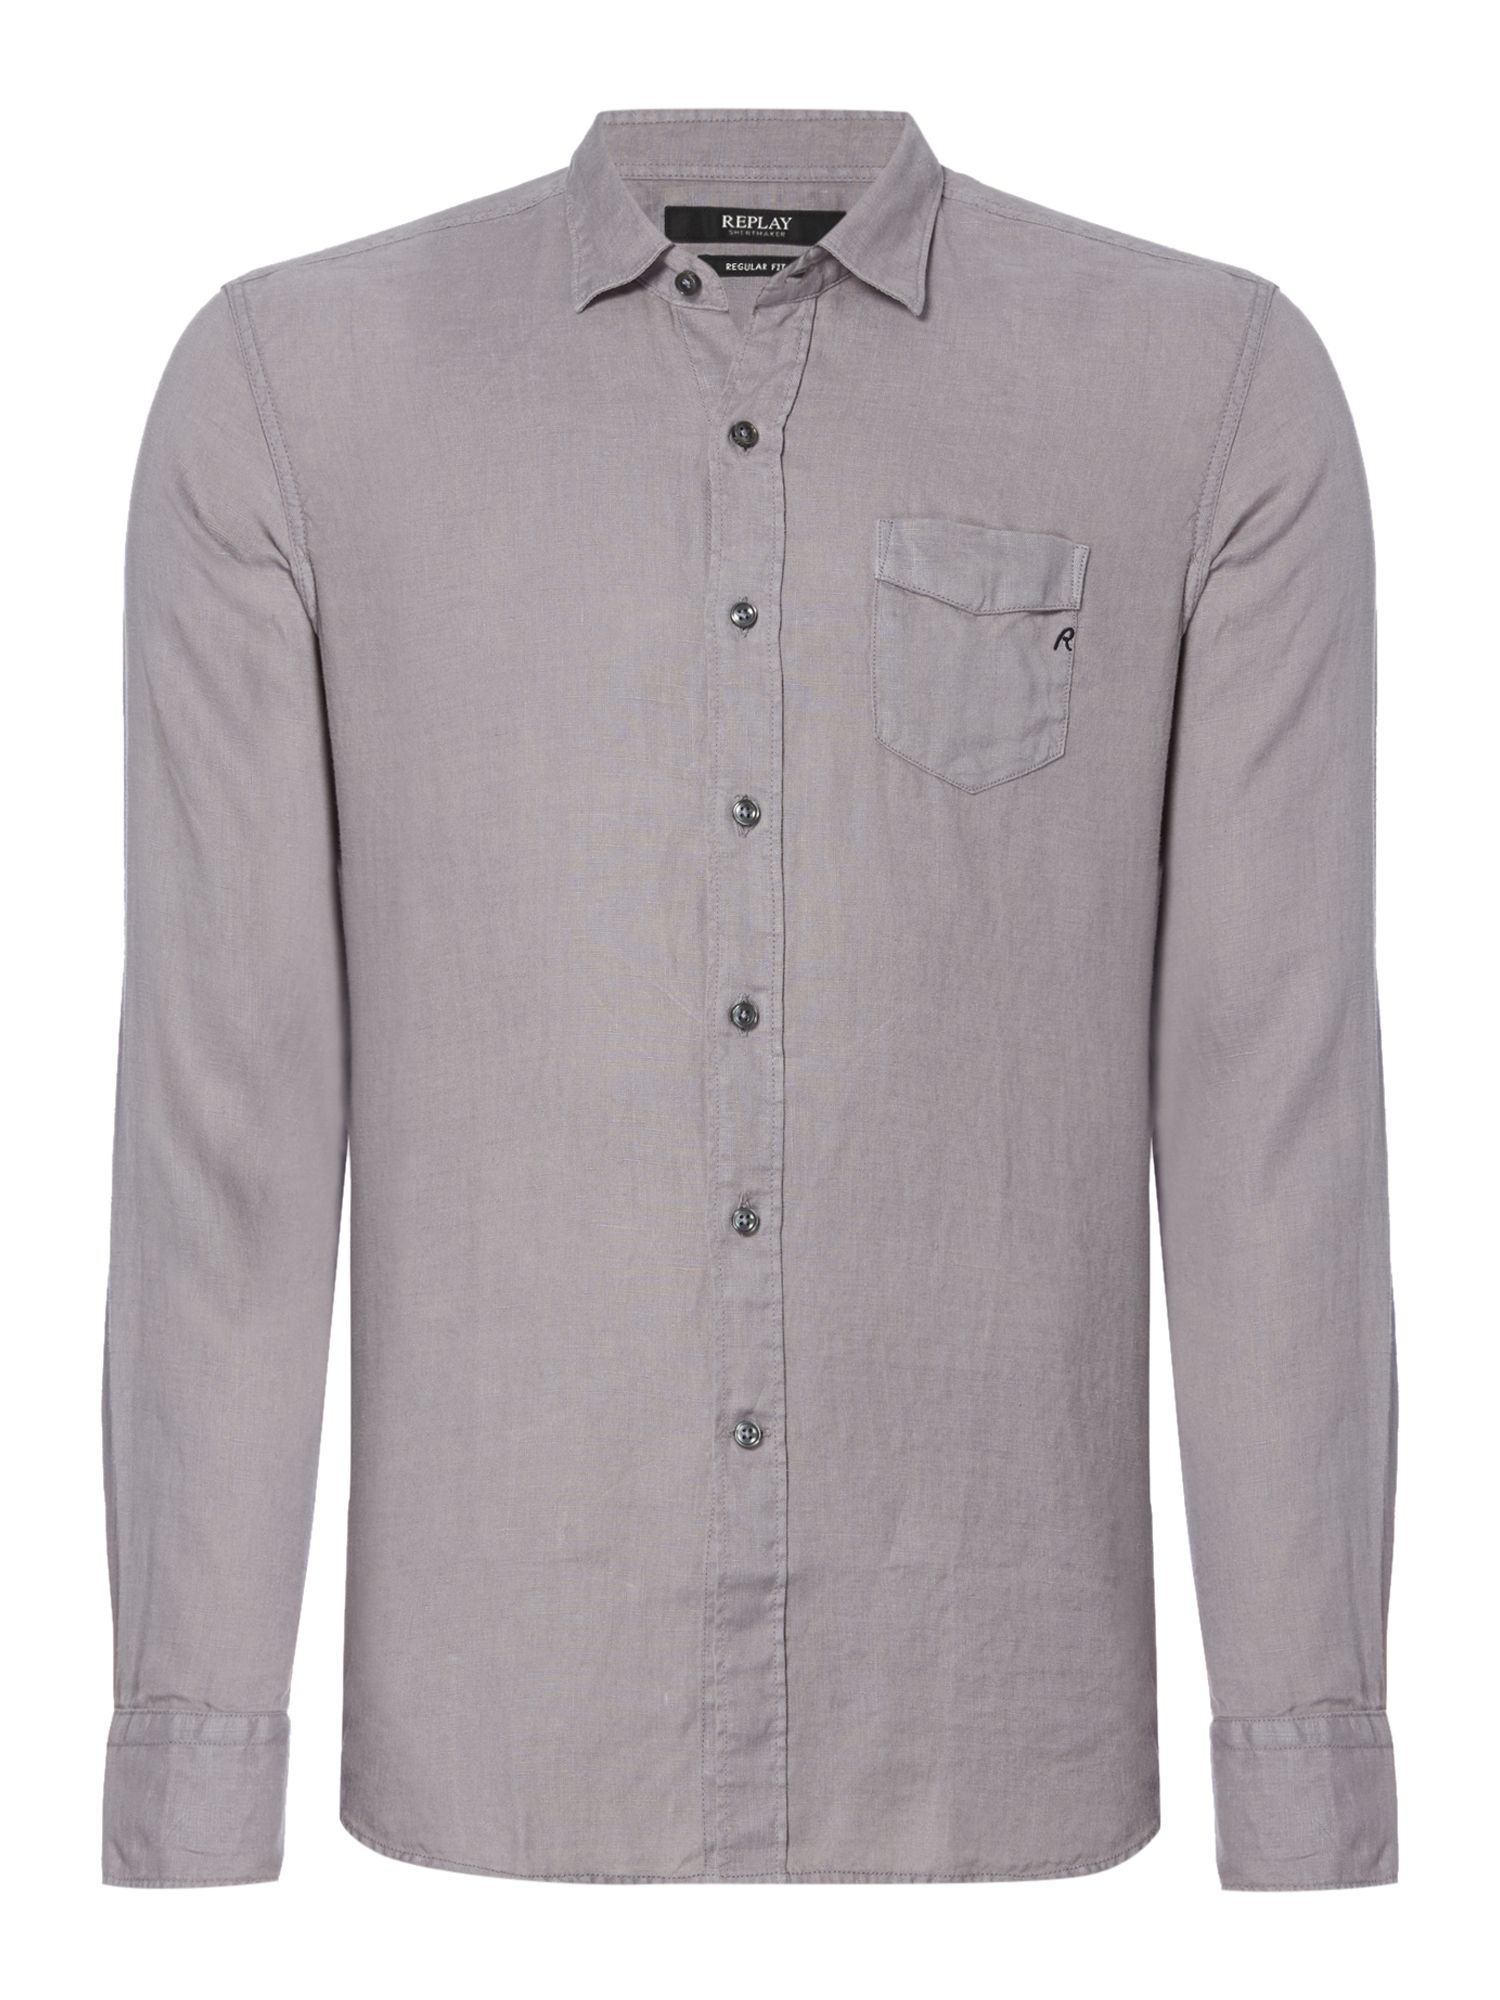 Enjoy the timeless comfort of our men's linen shirt all season. Details Renowned for centuries for its cool comfort in warm weather, our men's long-sleeved pure linen shirt is still one of the best summer shirts you can buy, and is the clear choice in the world's hottest climates.